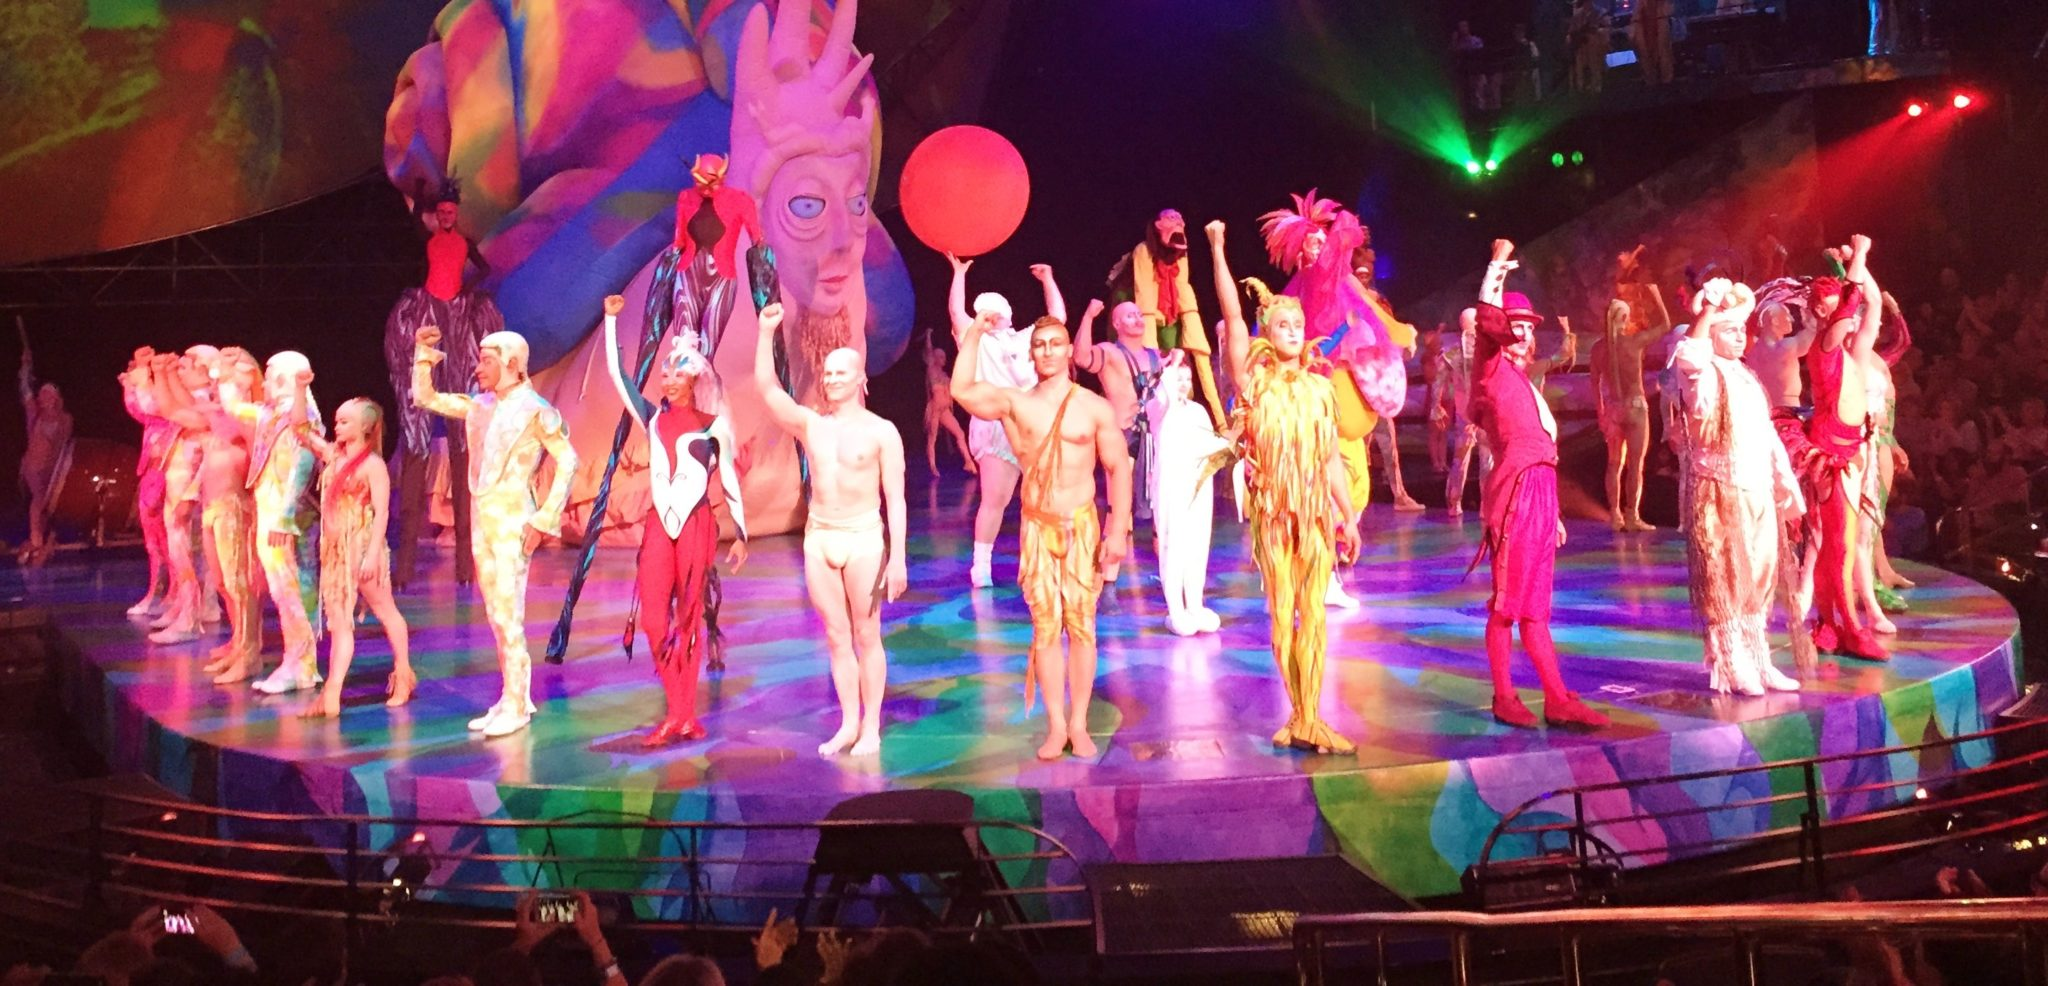 Review Mystere Cirque Du Soleil TI Las Vegas….. Mystere was Cirque Du Soleil's first and original unique productionin Las Vegas. First stagednearly 25years ago, it's […]